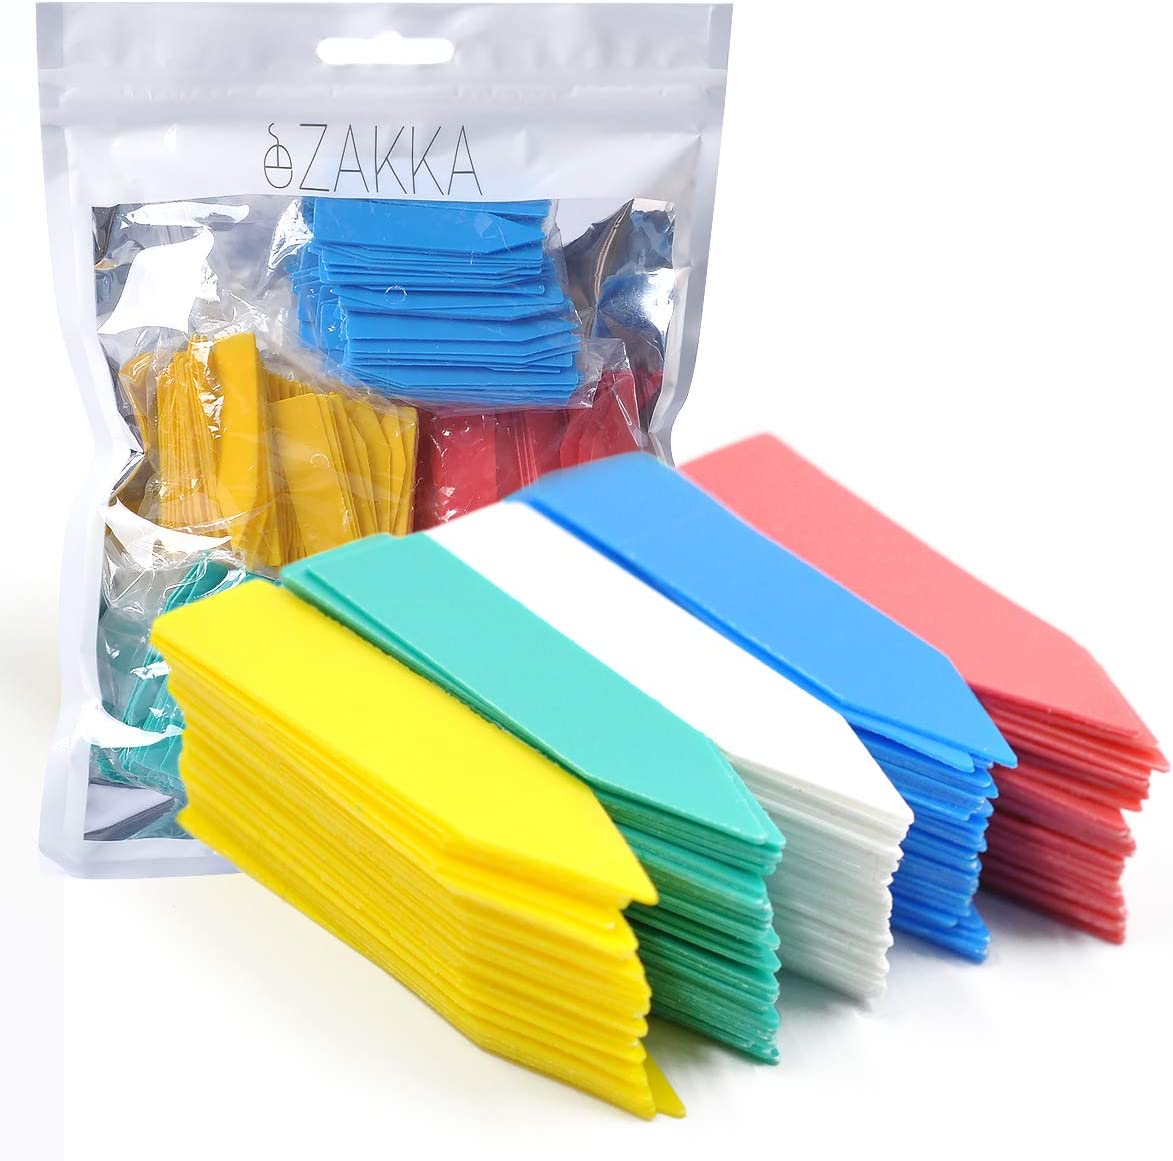 eZAKKA Plant Labels, 500pcs 2 Inches Plastic Nursery Garden Stakes Markers Tags, Multi-Color